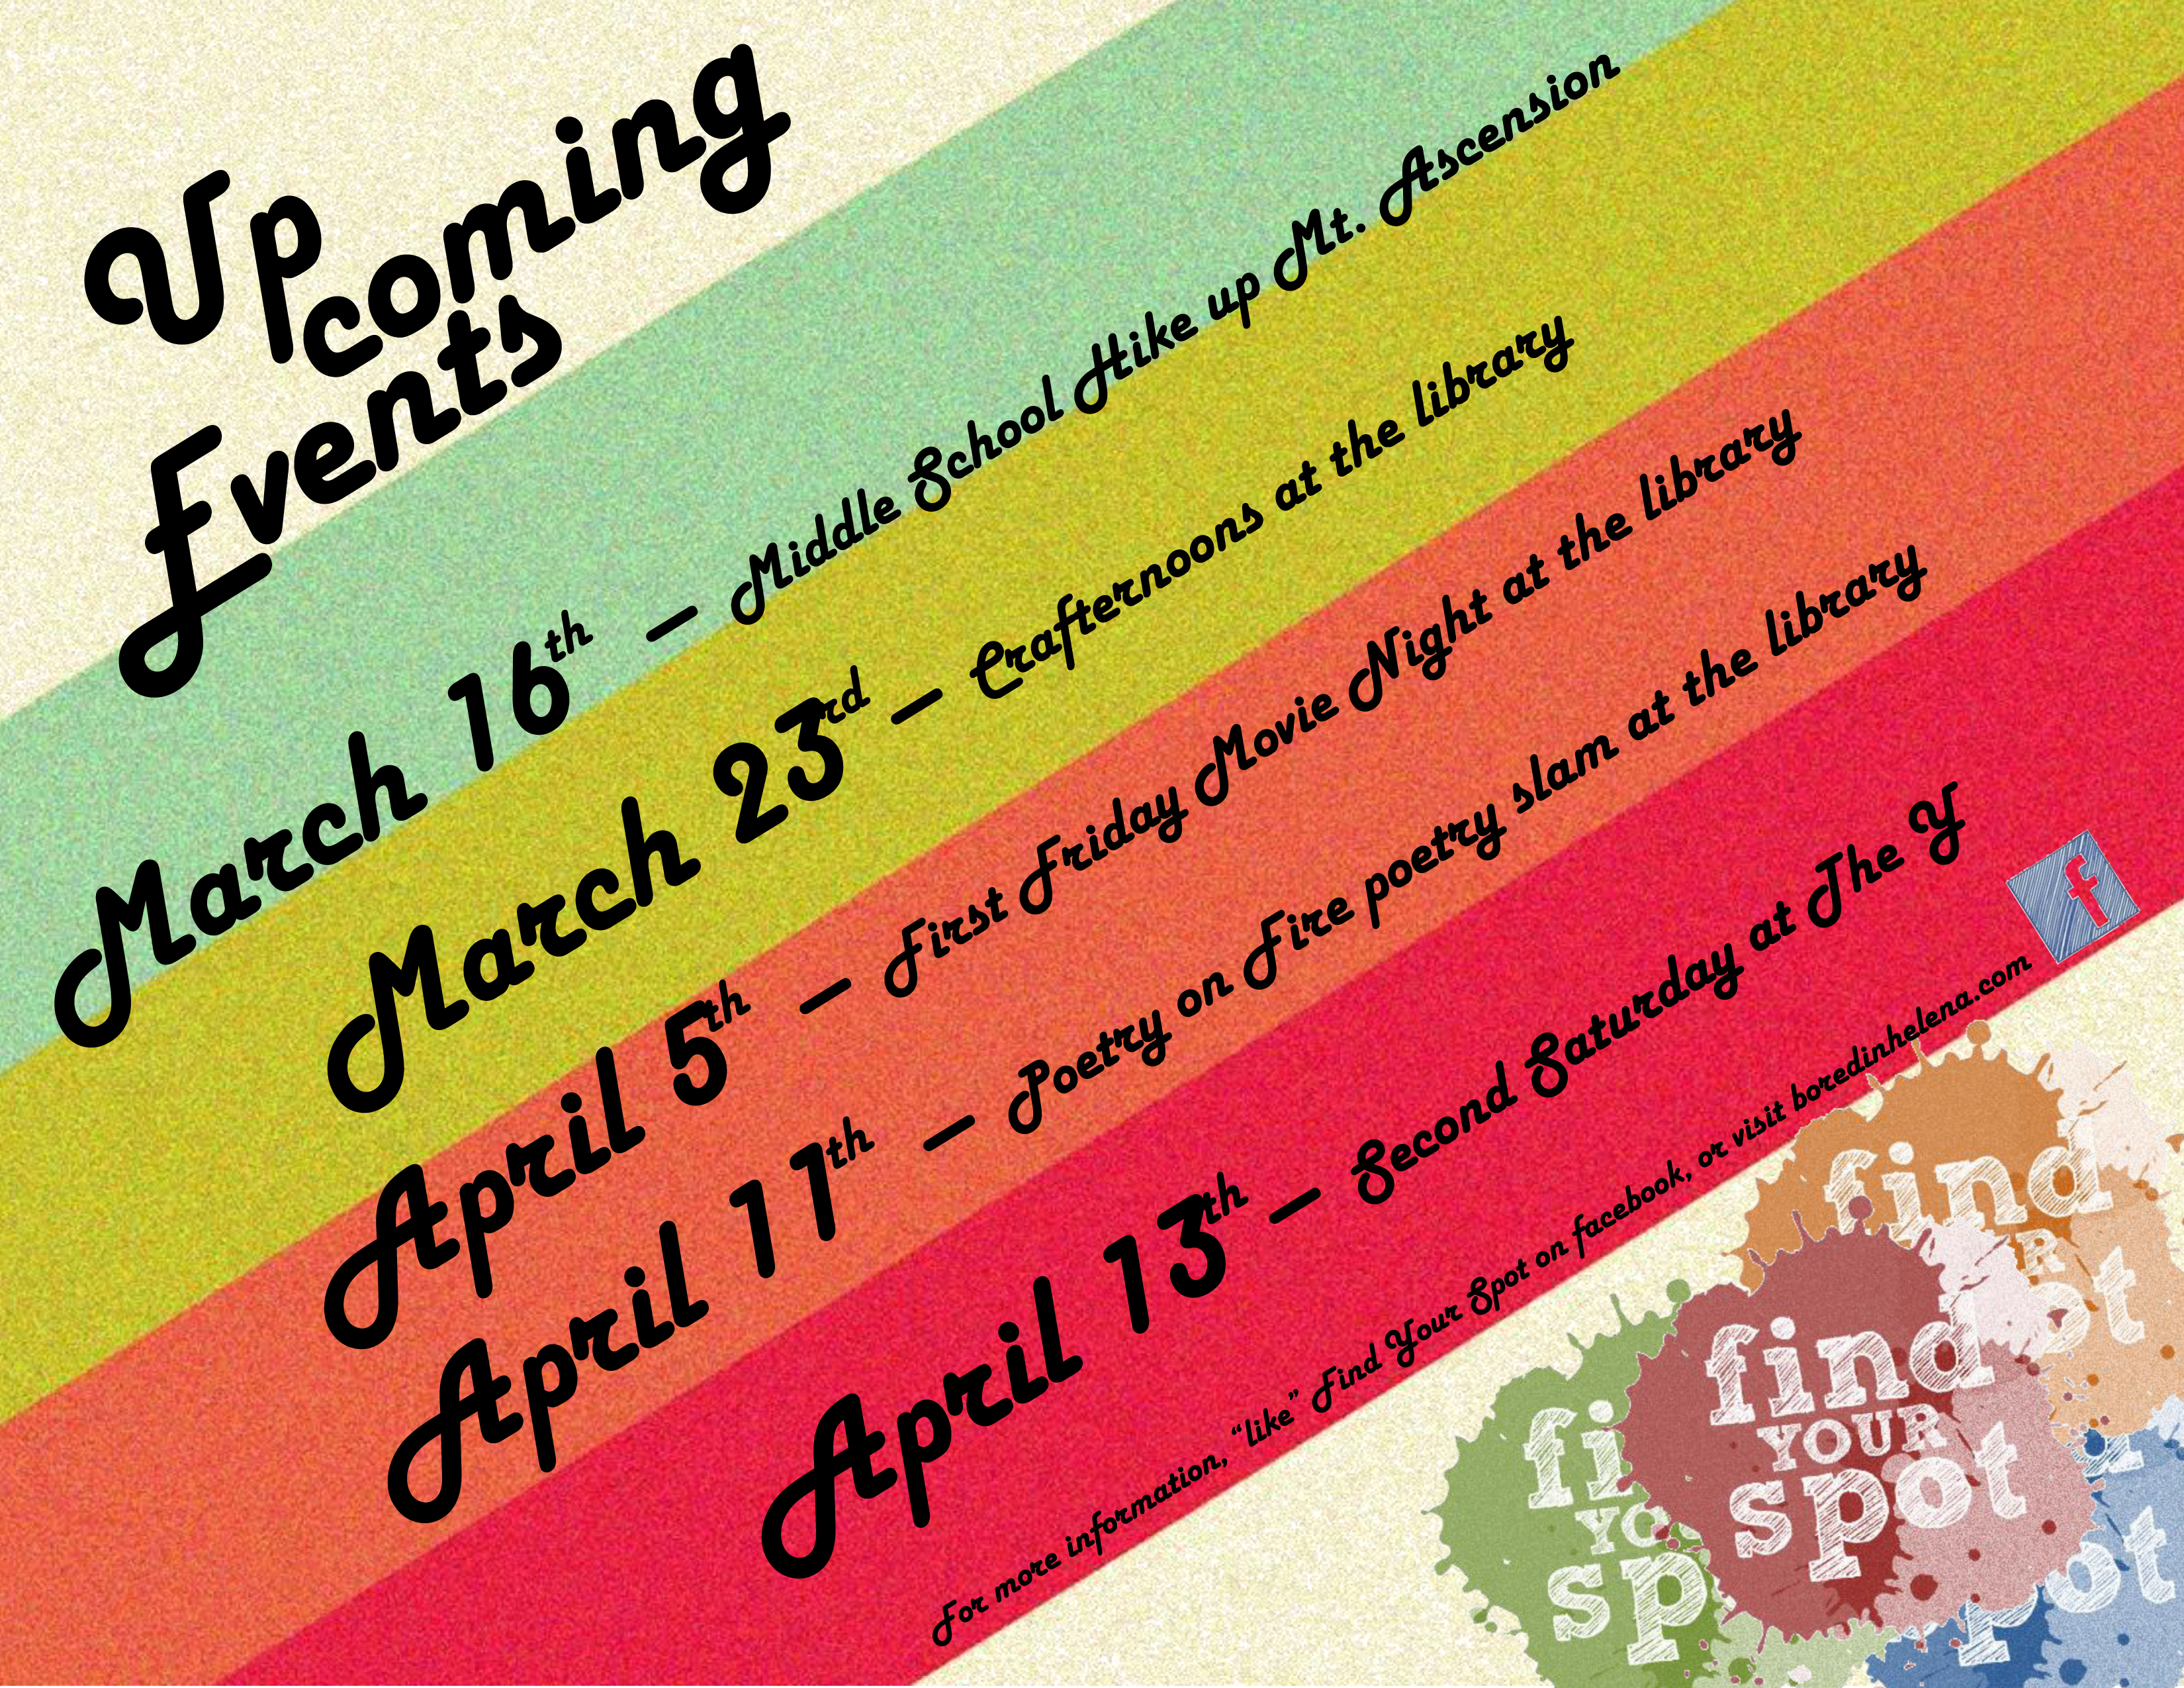 Find Your Spot Upcoming Activities